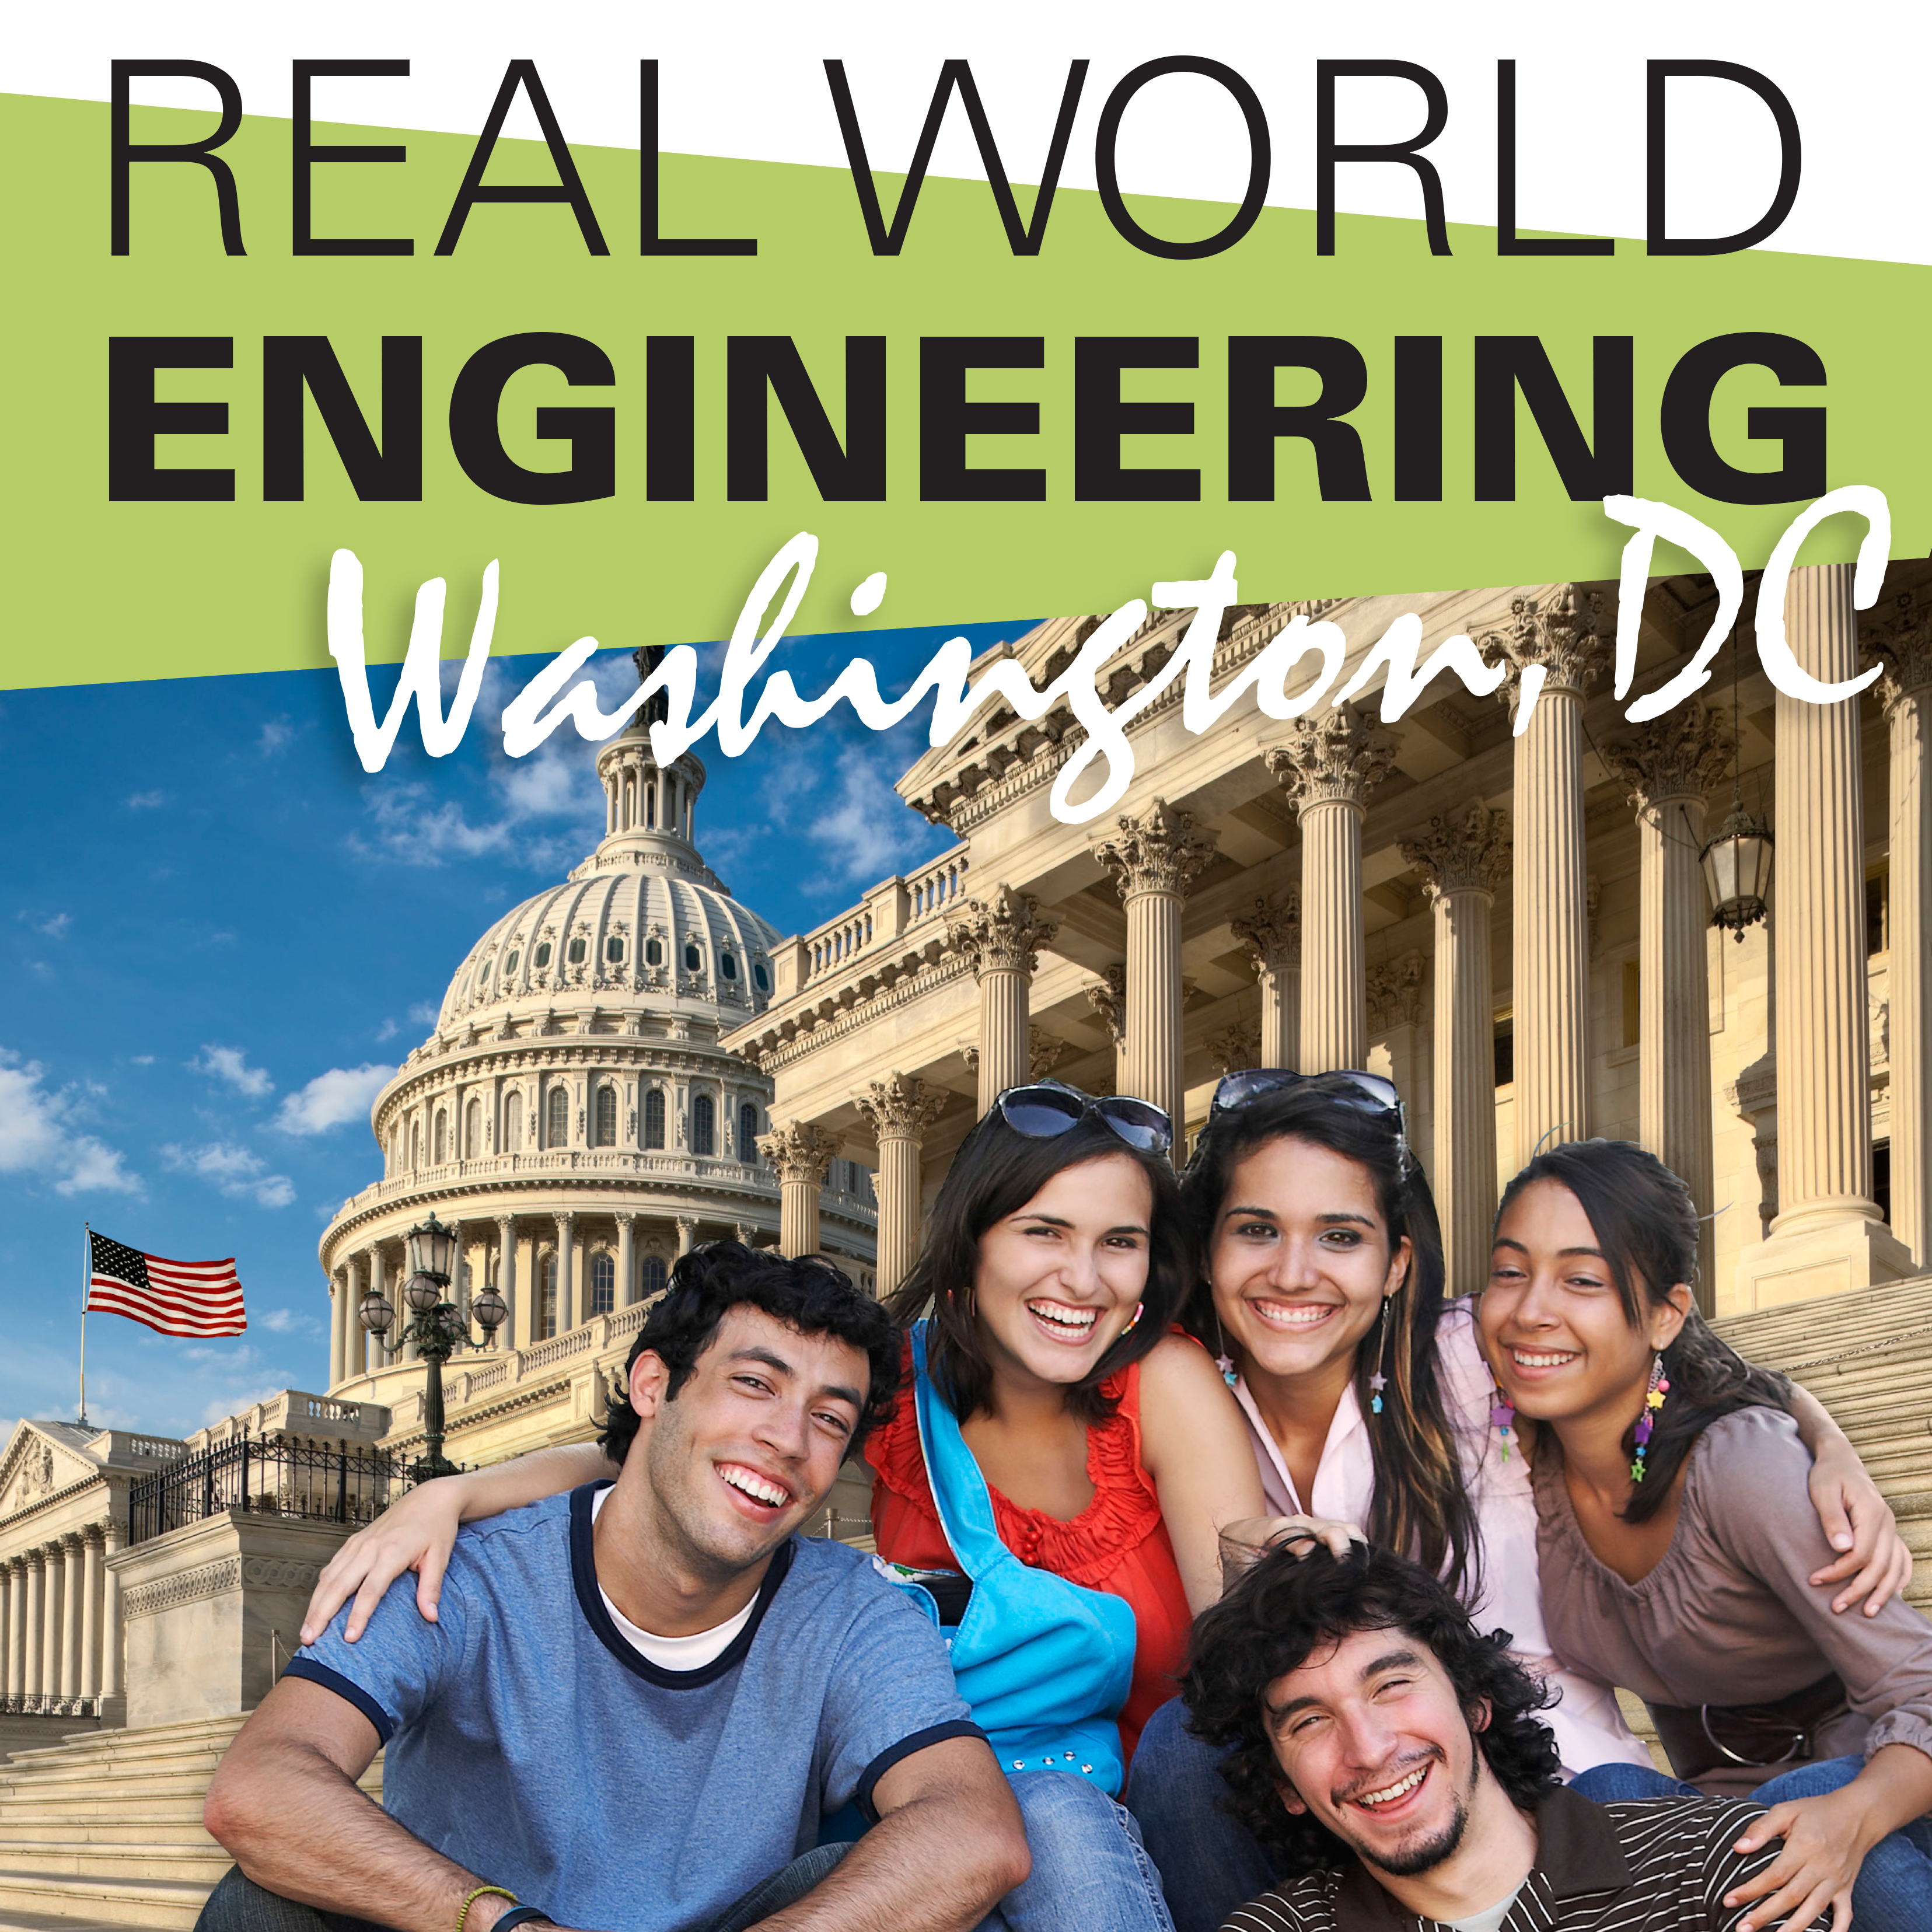 Real World Engineering - DC